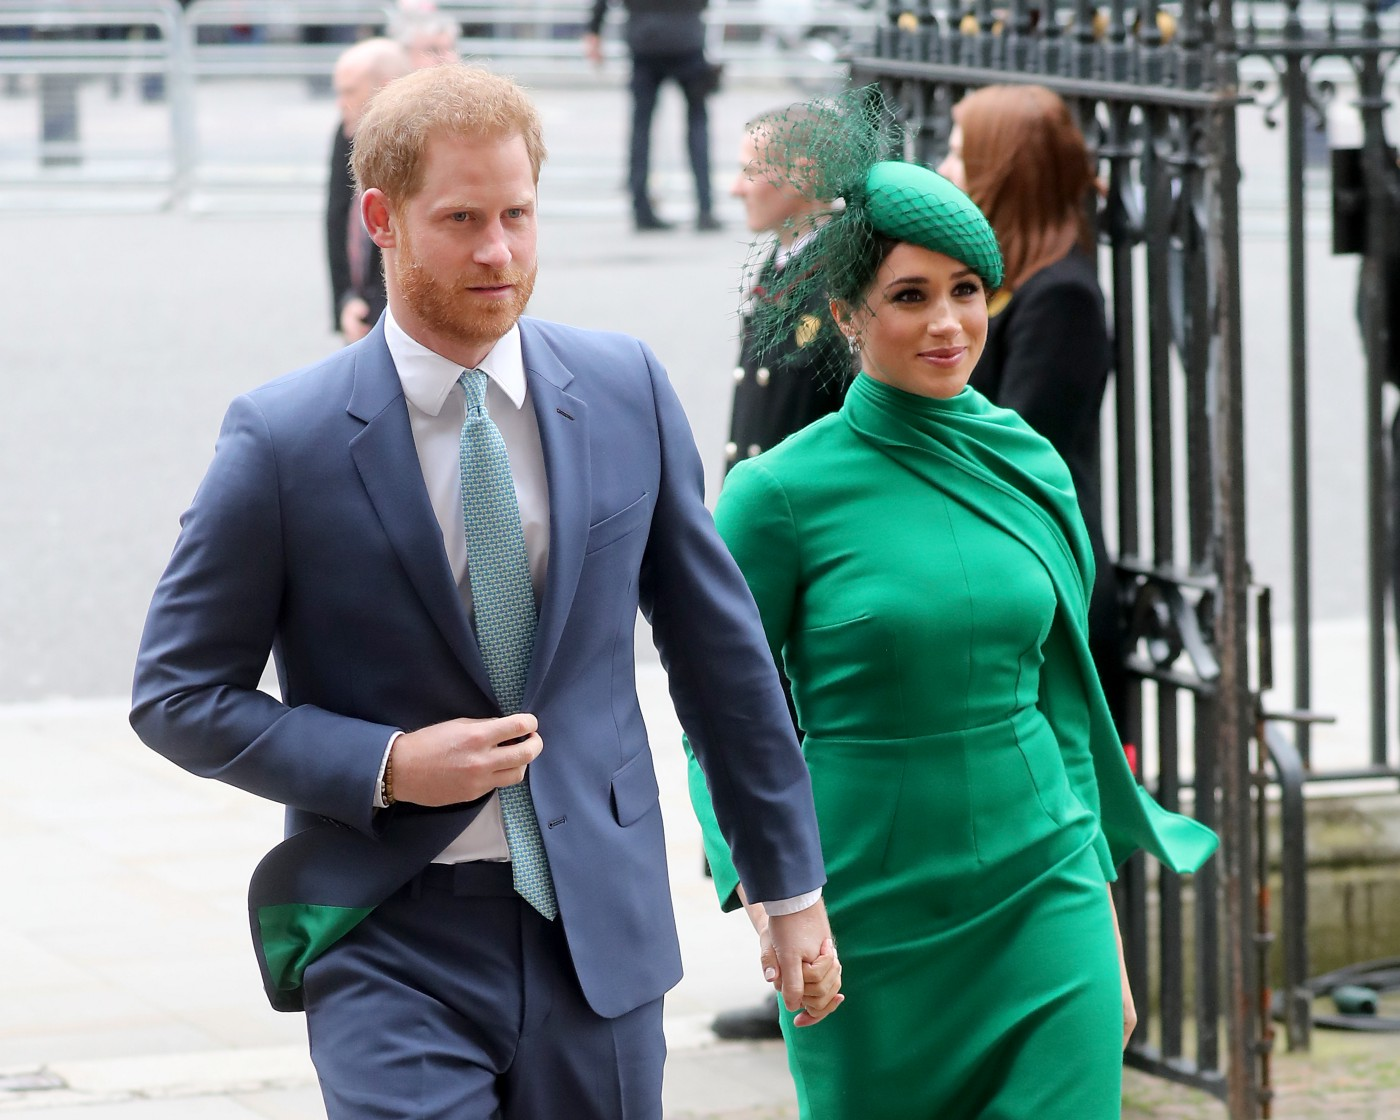 Meghan Markle and Prince Harry arrive at an event in London in March 2020.